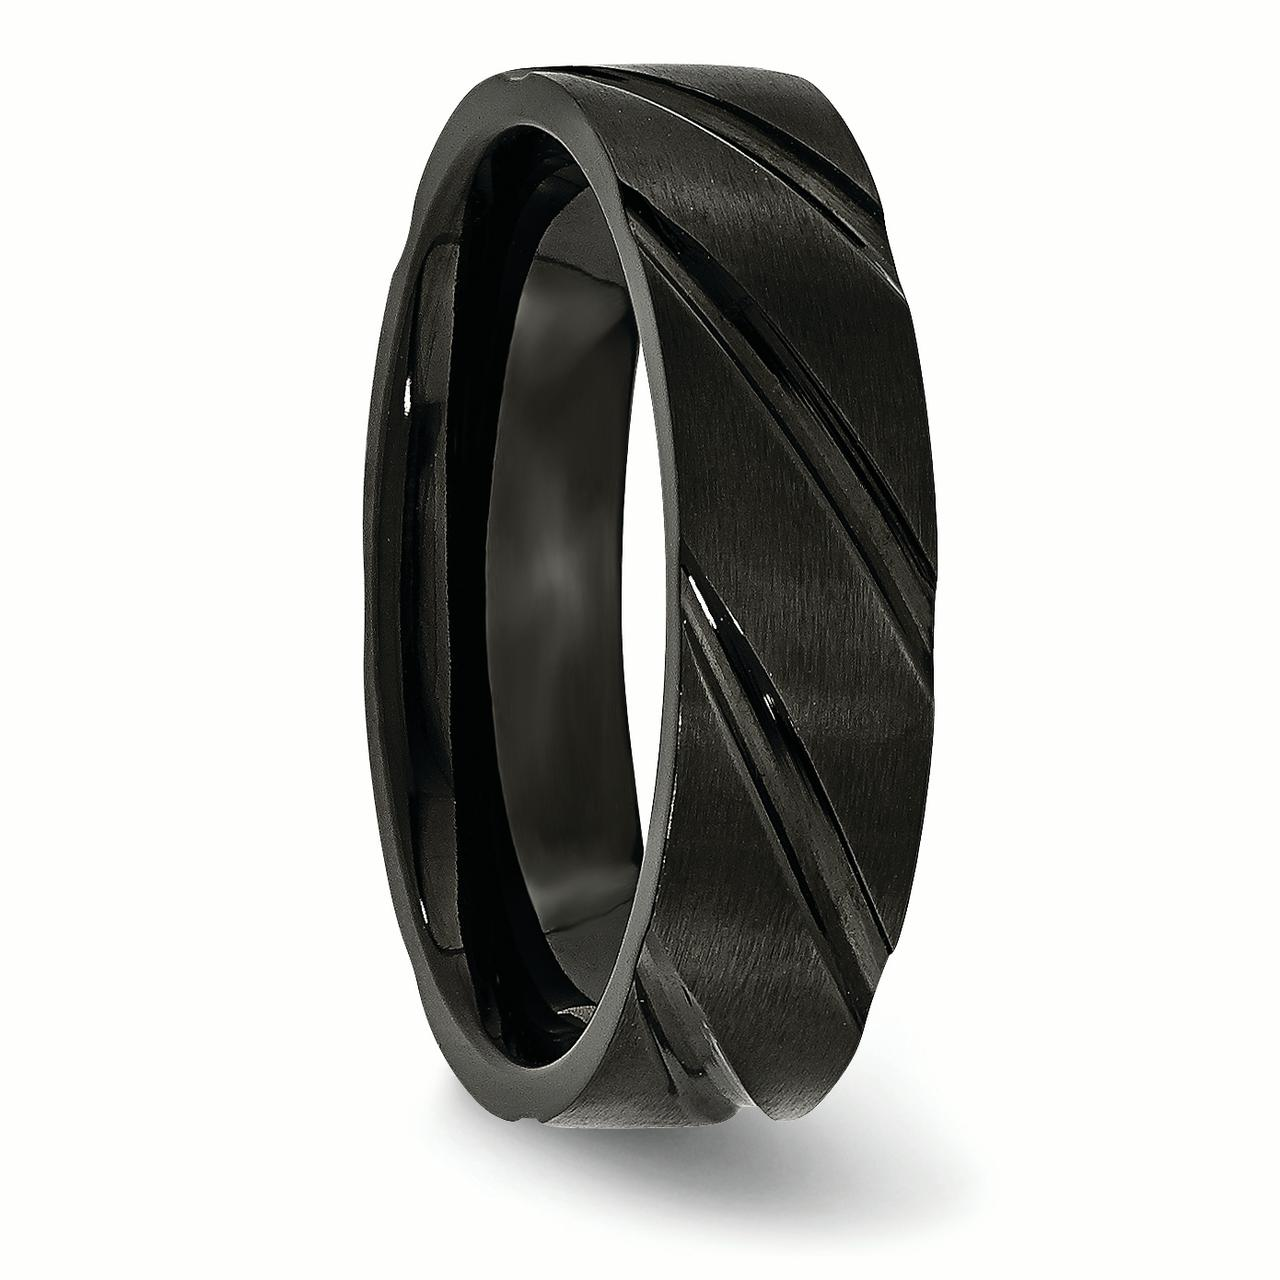 Titanium Swirl Design Black Plated 6mm Brushed/ Wedding Ring Band Size 13.00 Fancy Fashion Jewelry Gifts For Women For Her - image 2 of 6